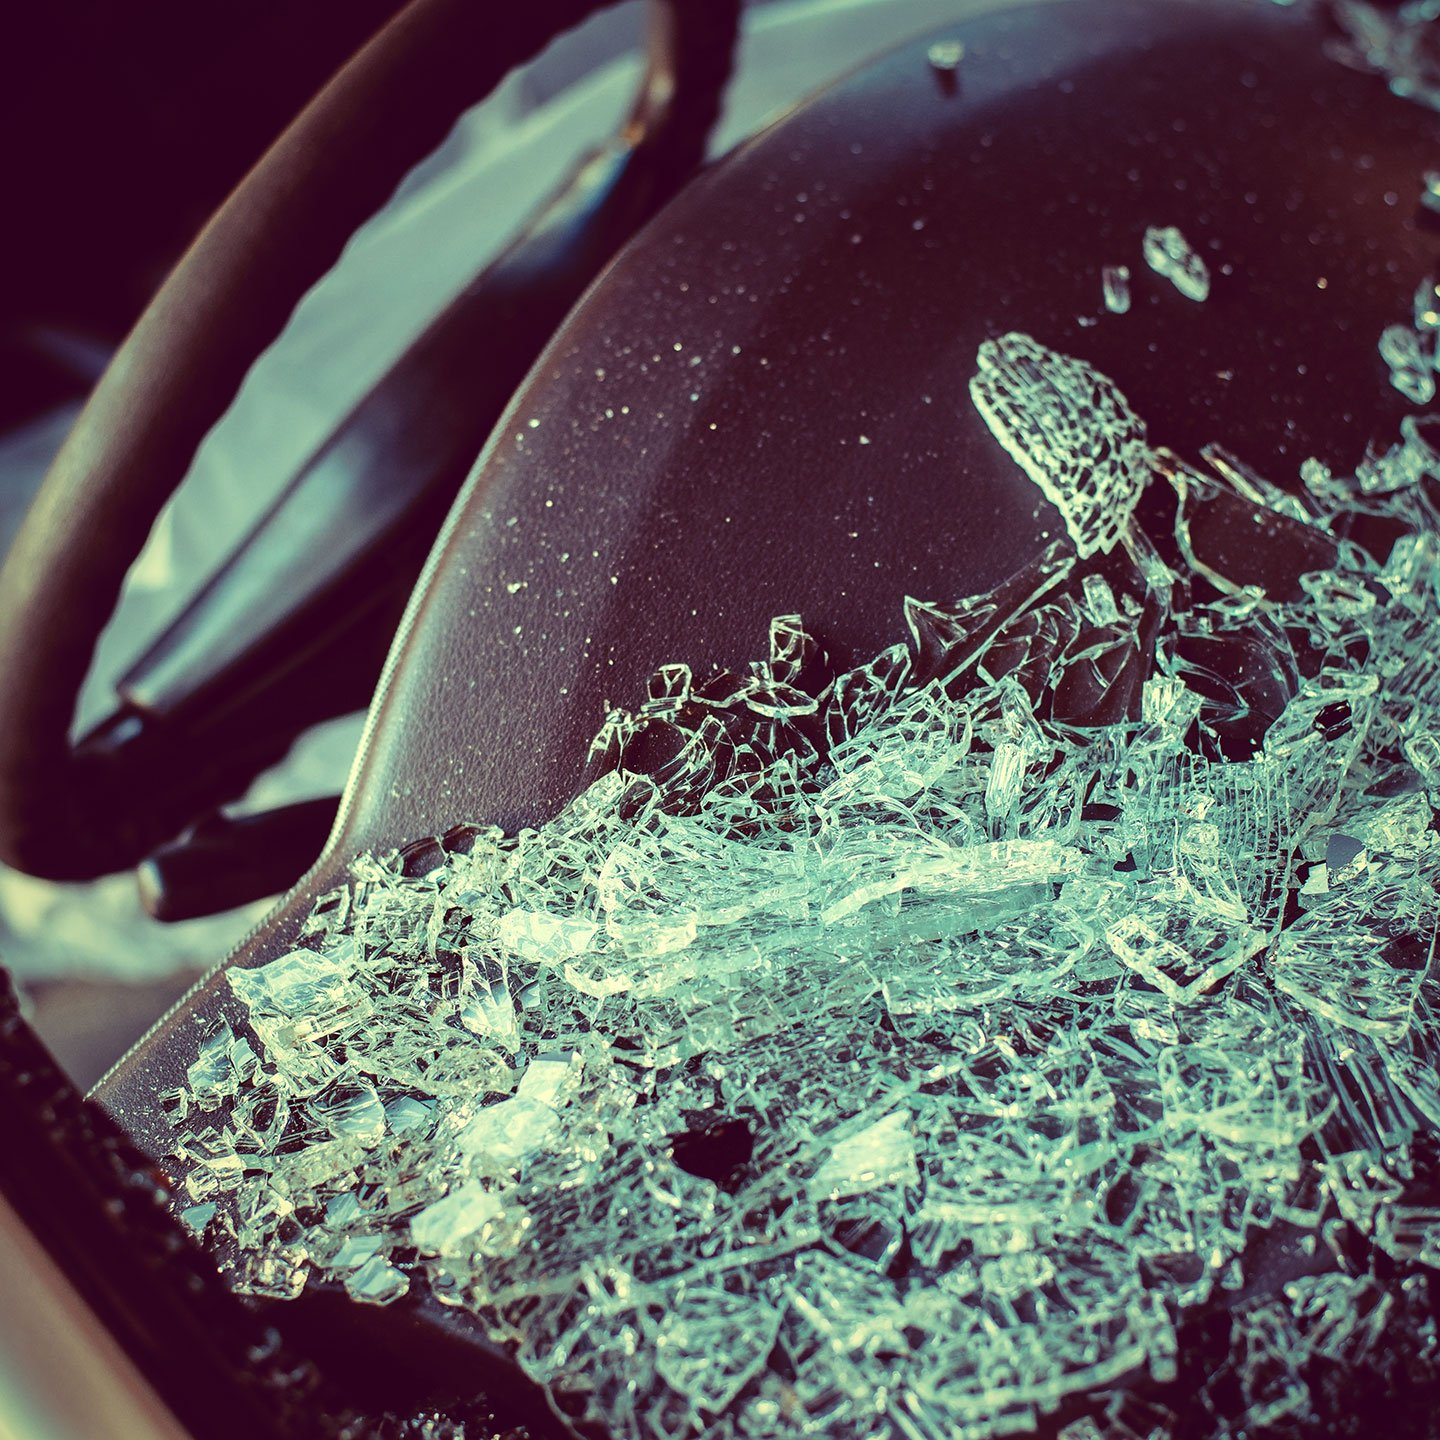 Close-up photo of a broken windshield laying on a dashboard